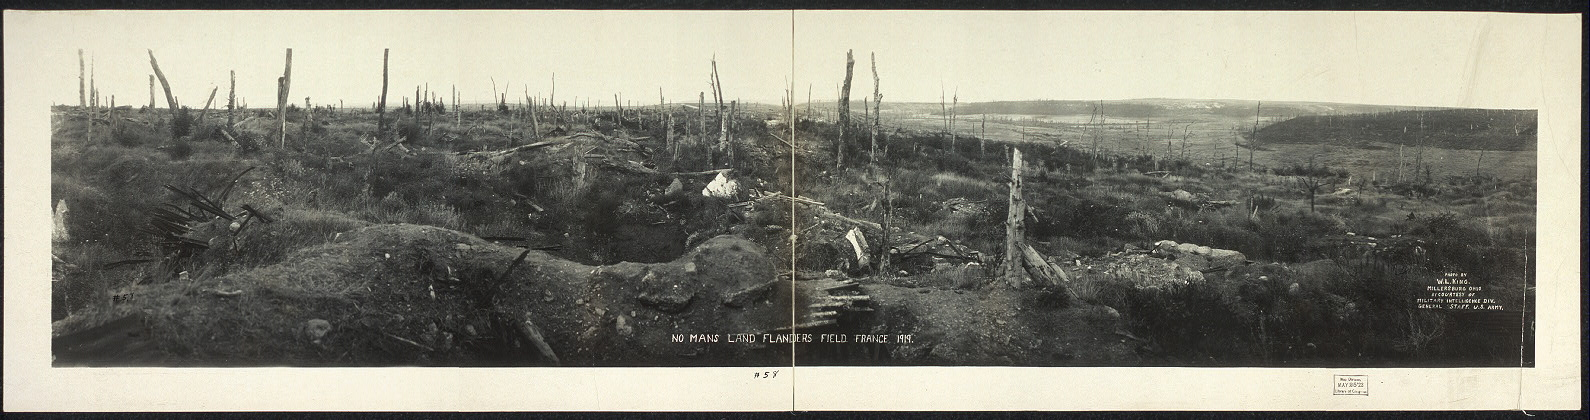 No Man's Land, Flanders, 1919.  Photo by W. L. King, Millersberg, Ohio; by courtesy of Military Intelligence Div., General Staff, U.S. Army.